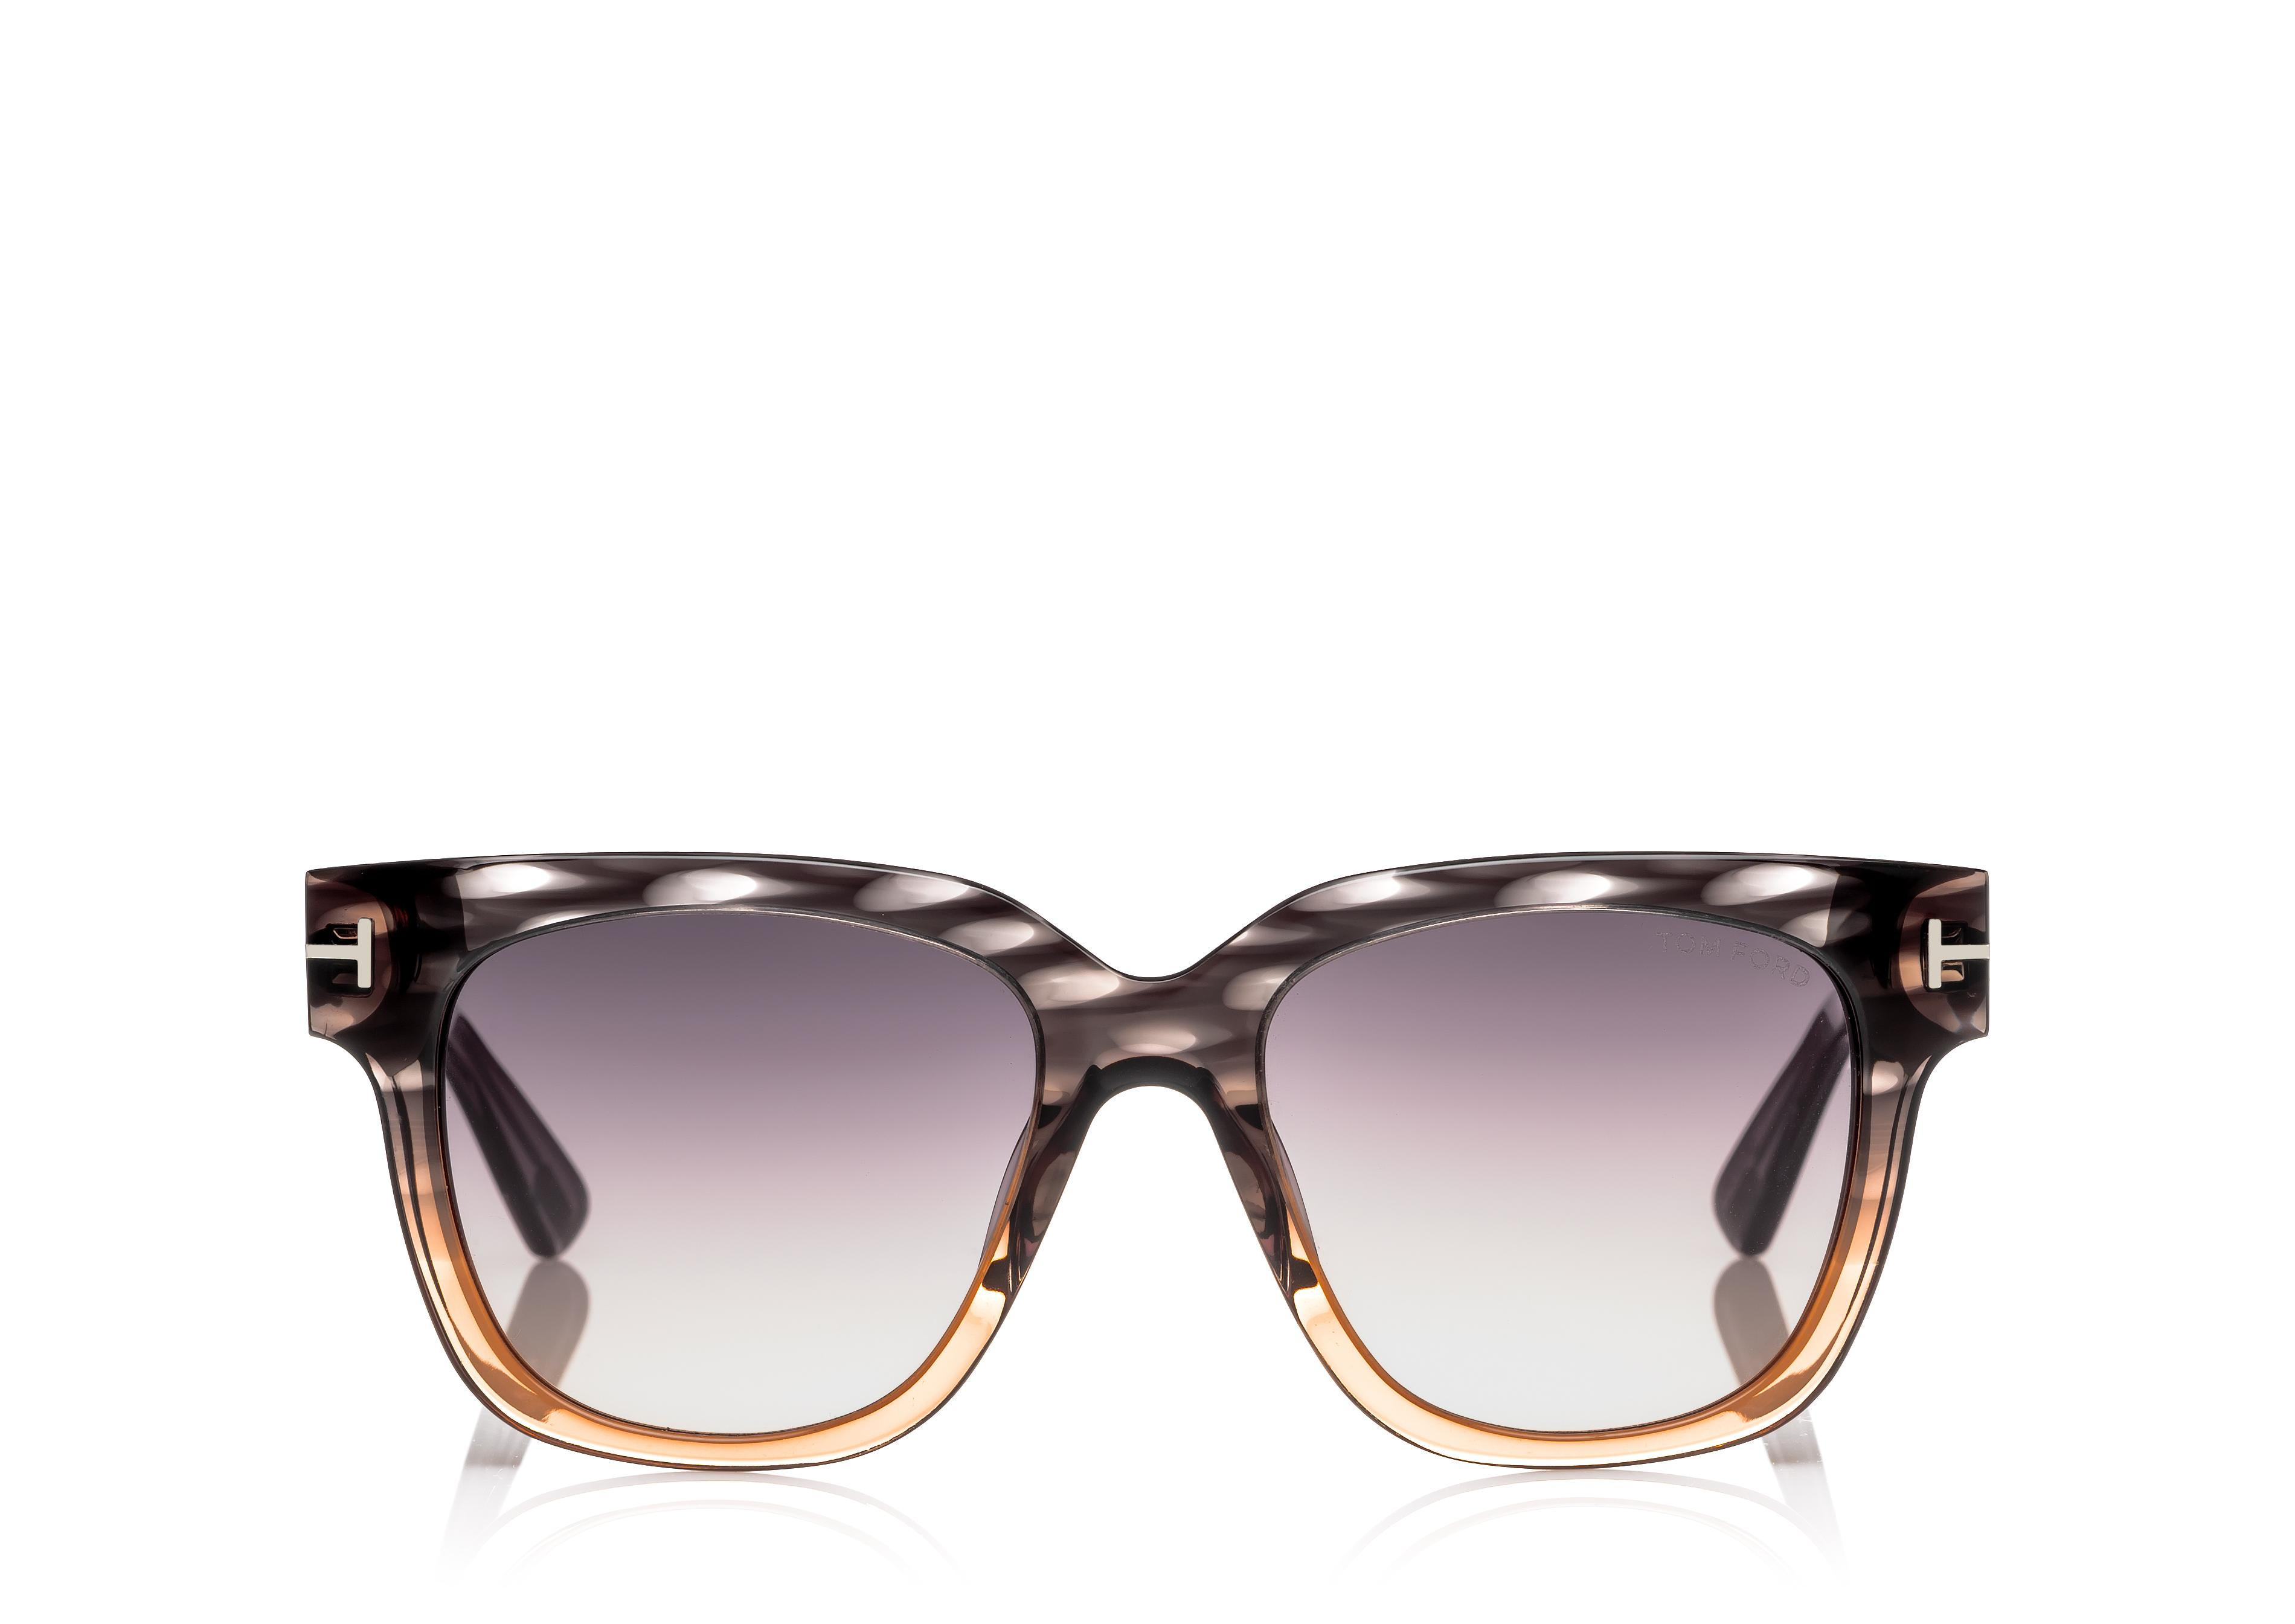 TRACY SUNGLASSES WITH FLASH LENSES A thumbnail